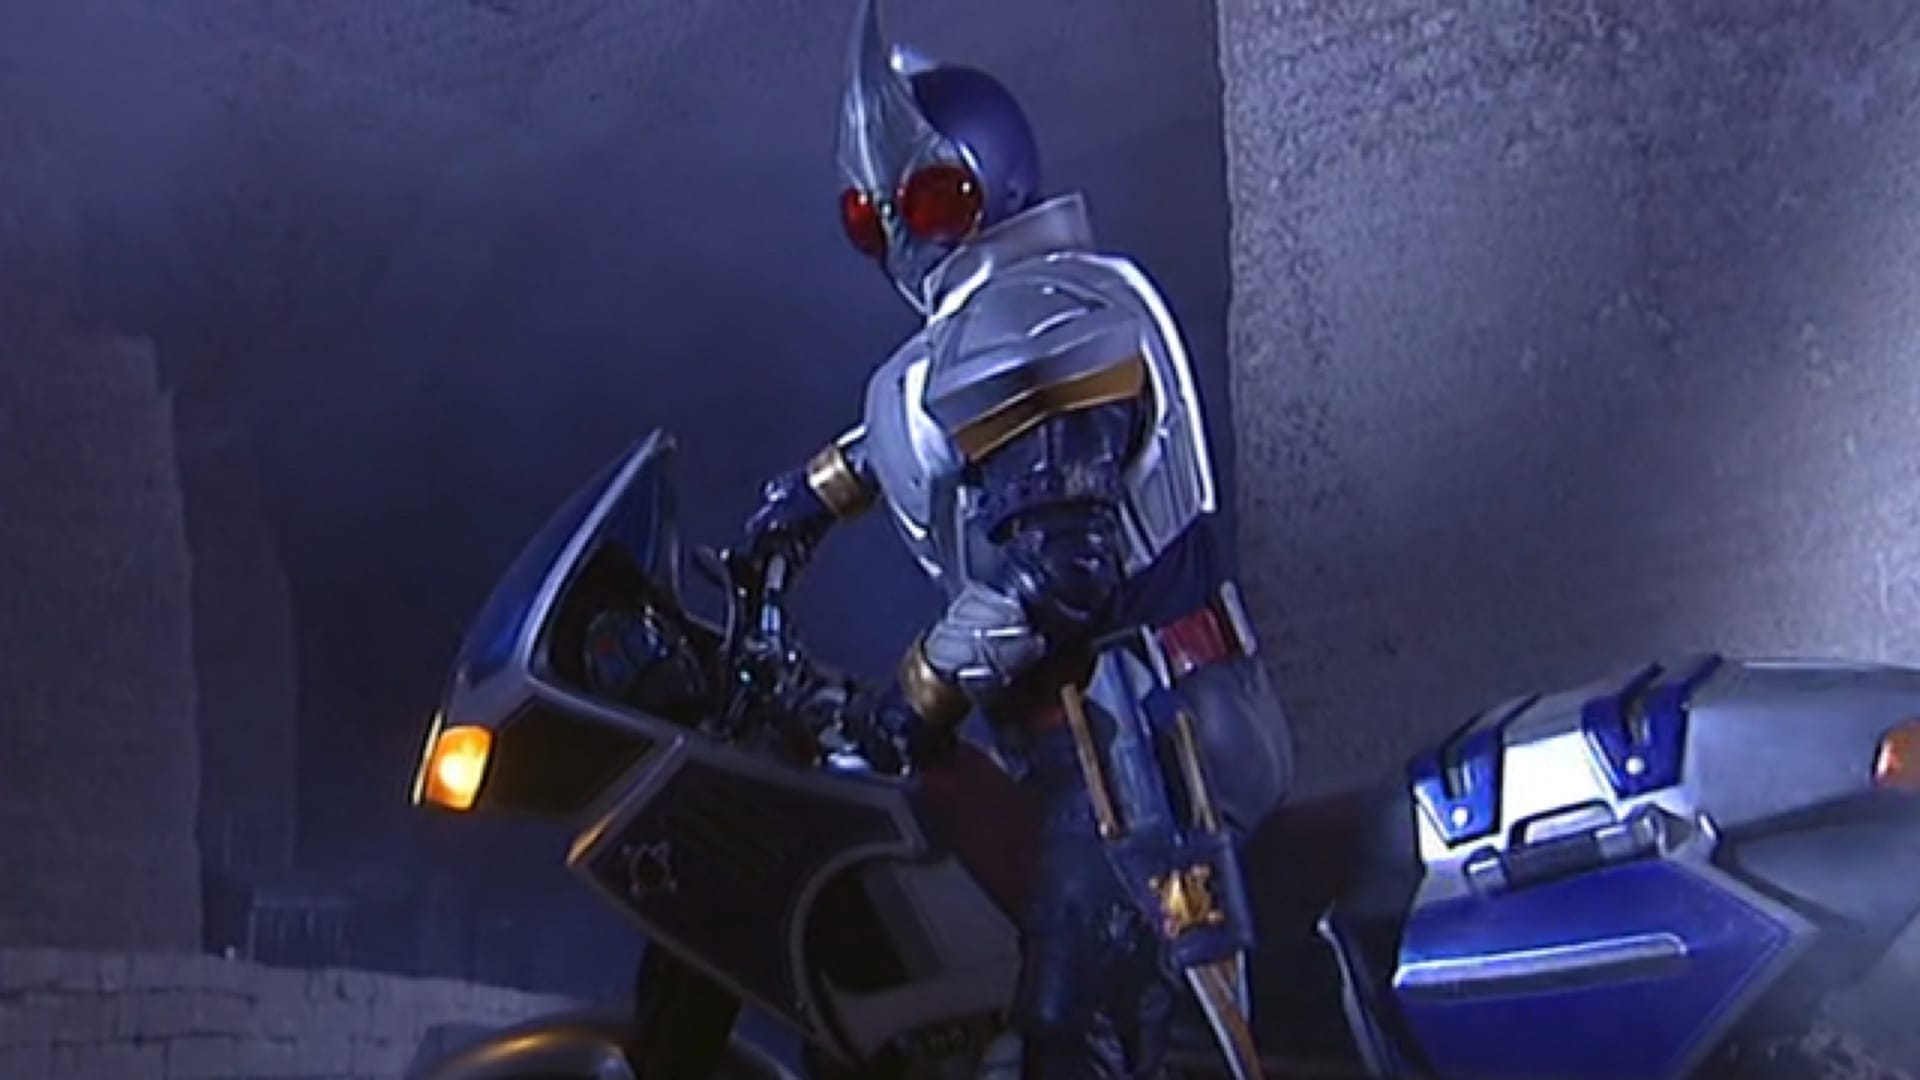 Kamen Rider Season 14 :Episode 1  The Indigo Warrior